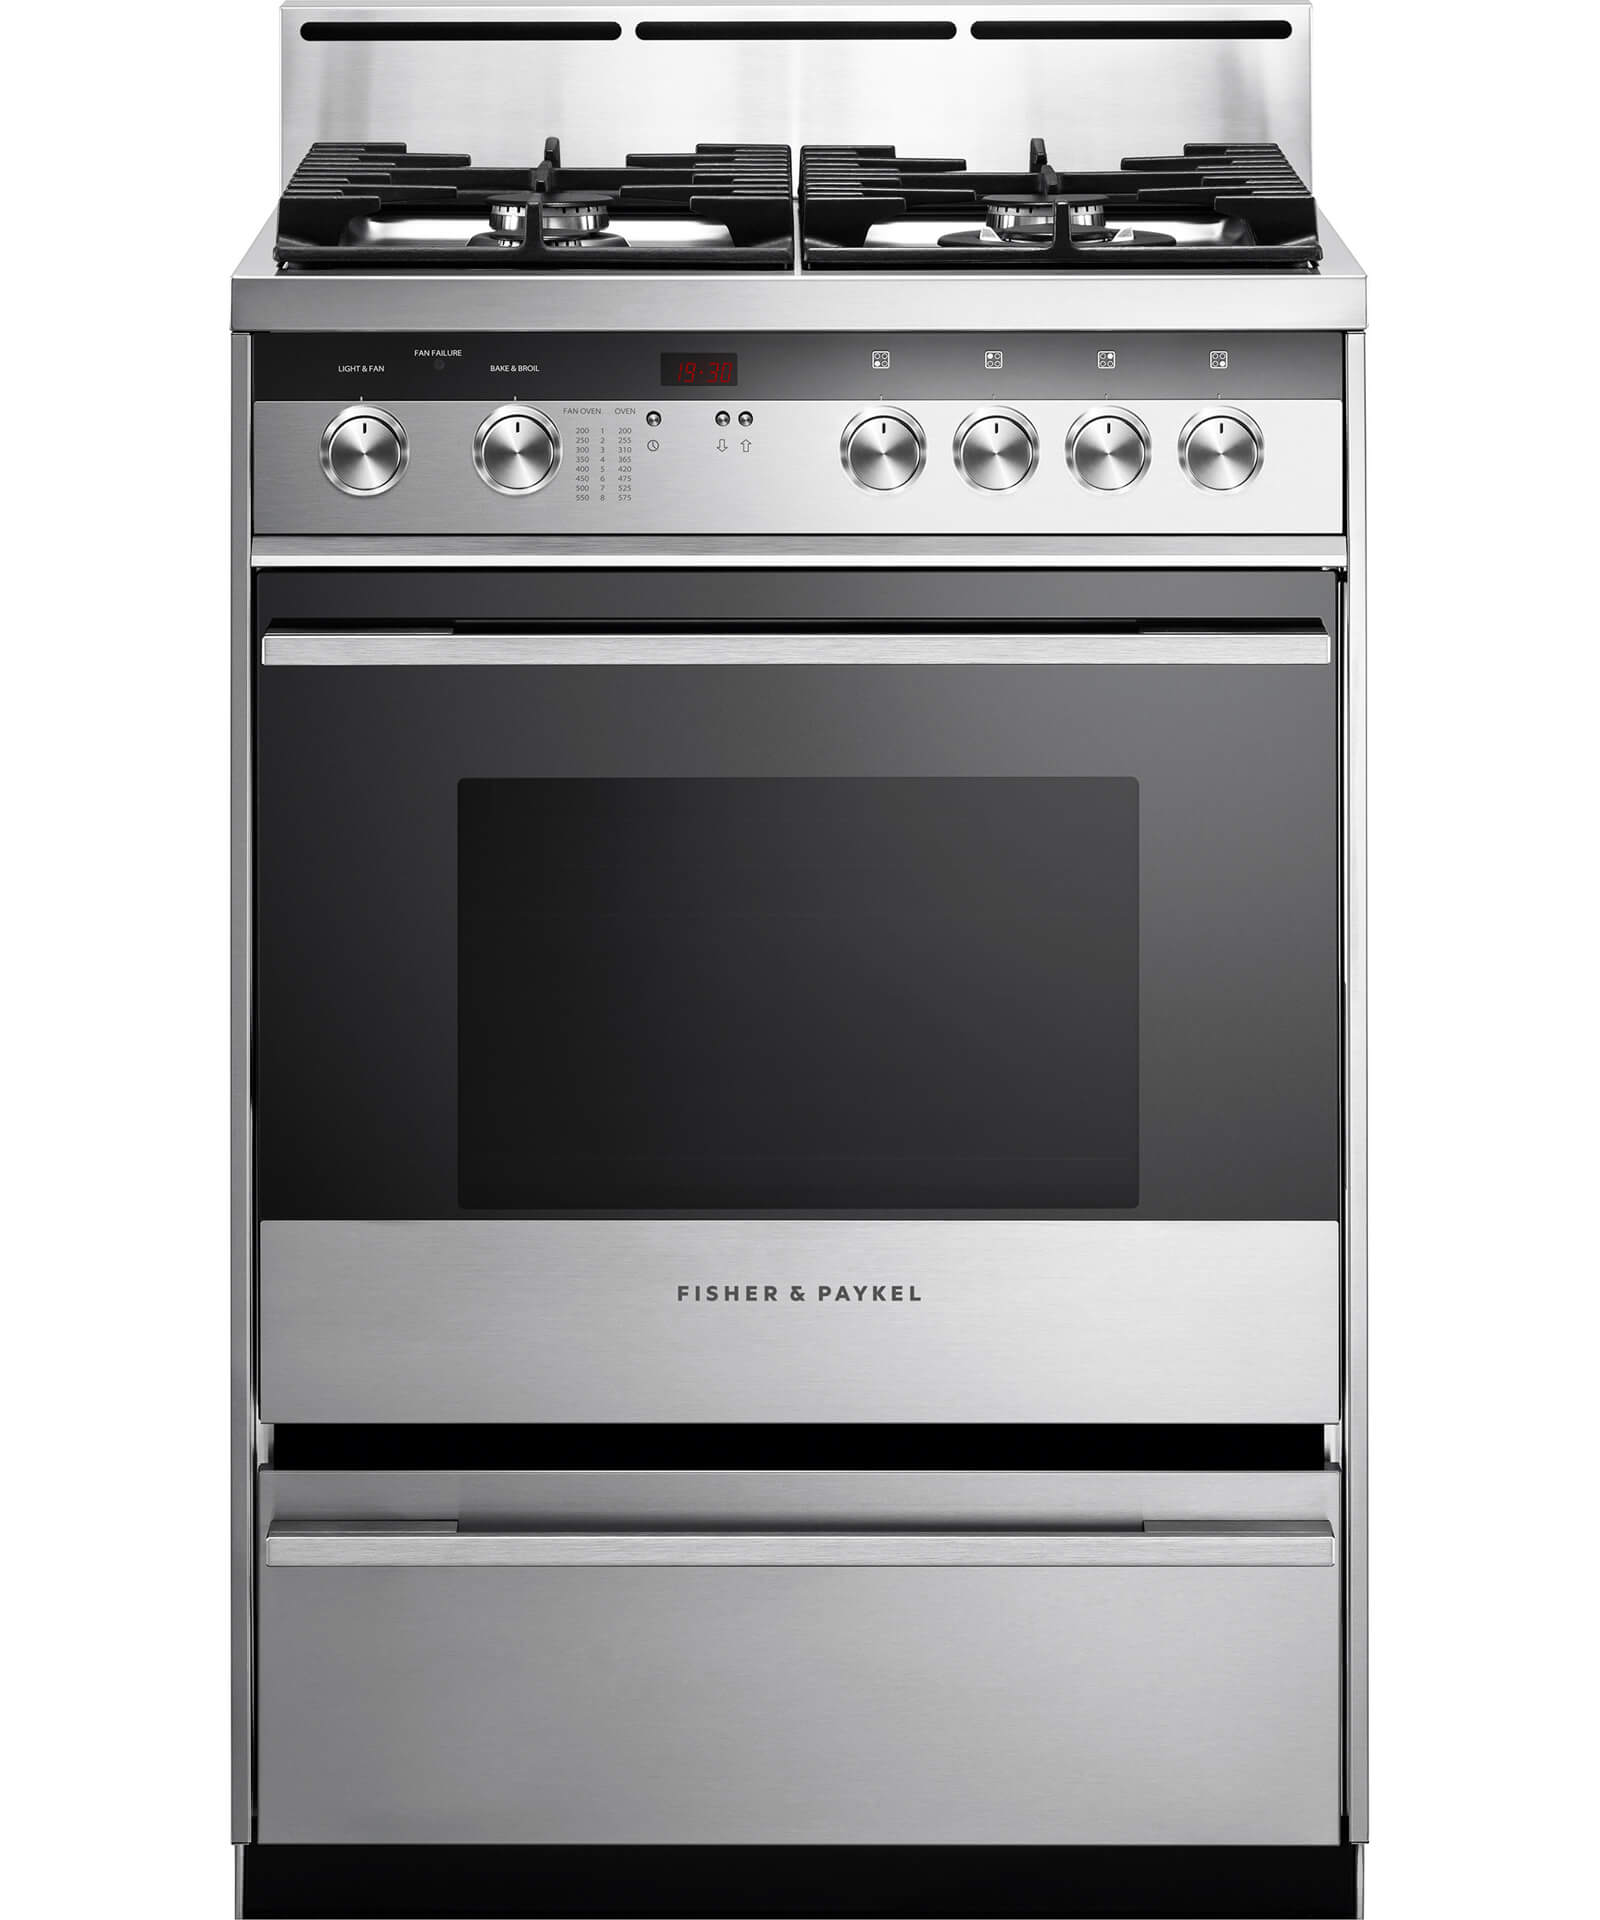 Or24sdmbgx2 N Fisher Paykel 24 Gas Range